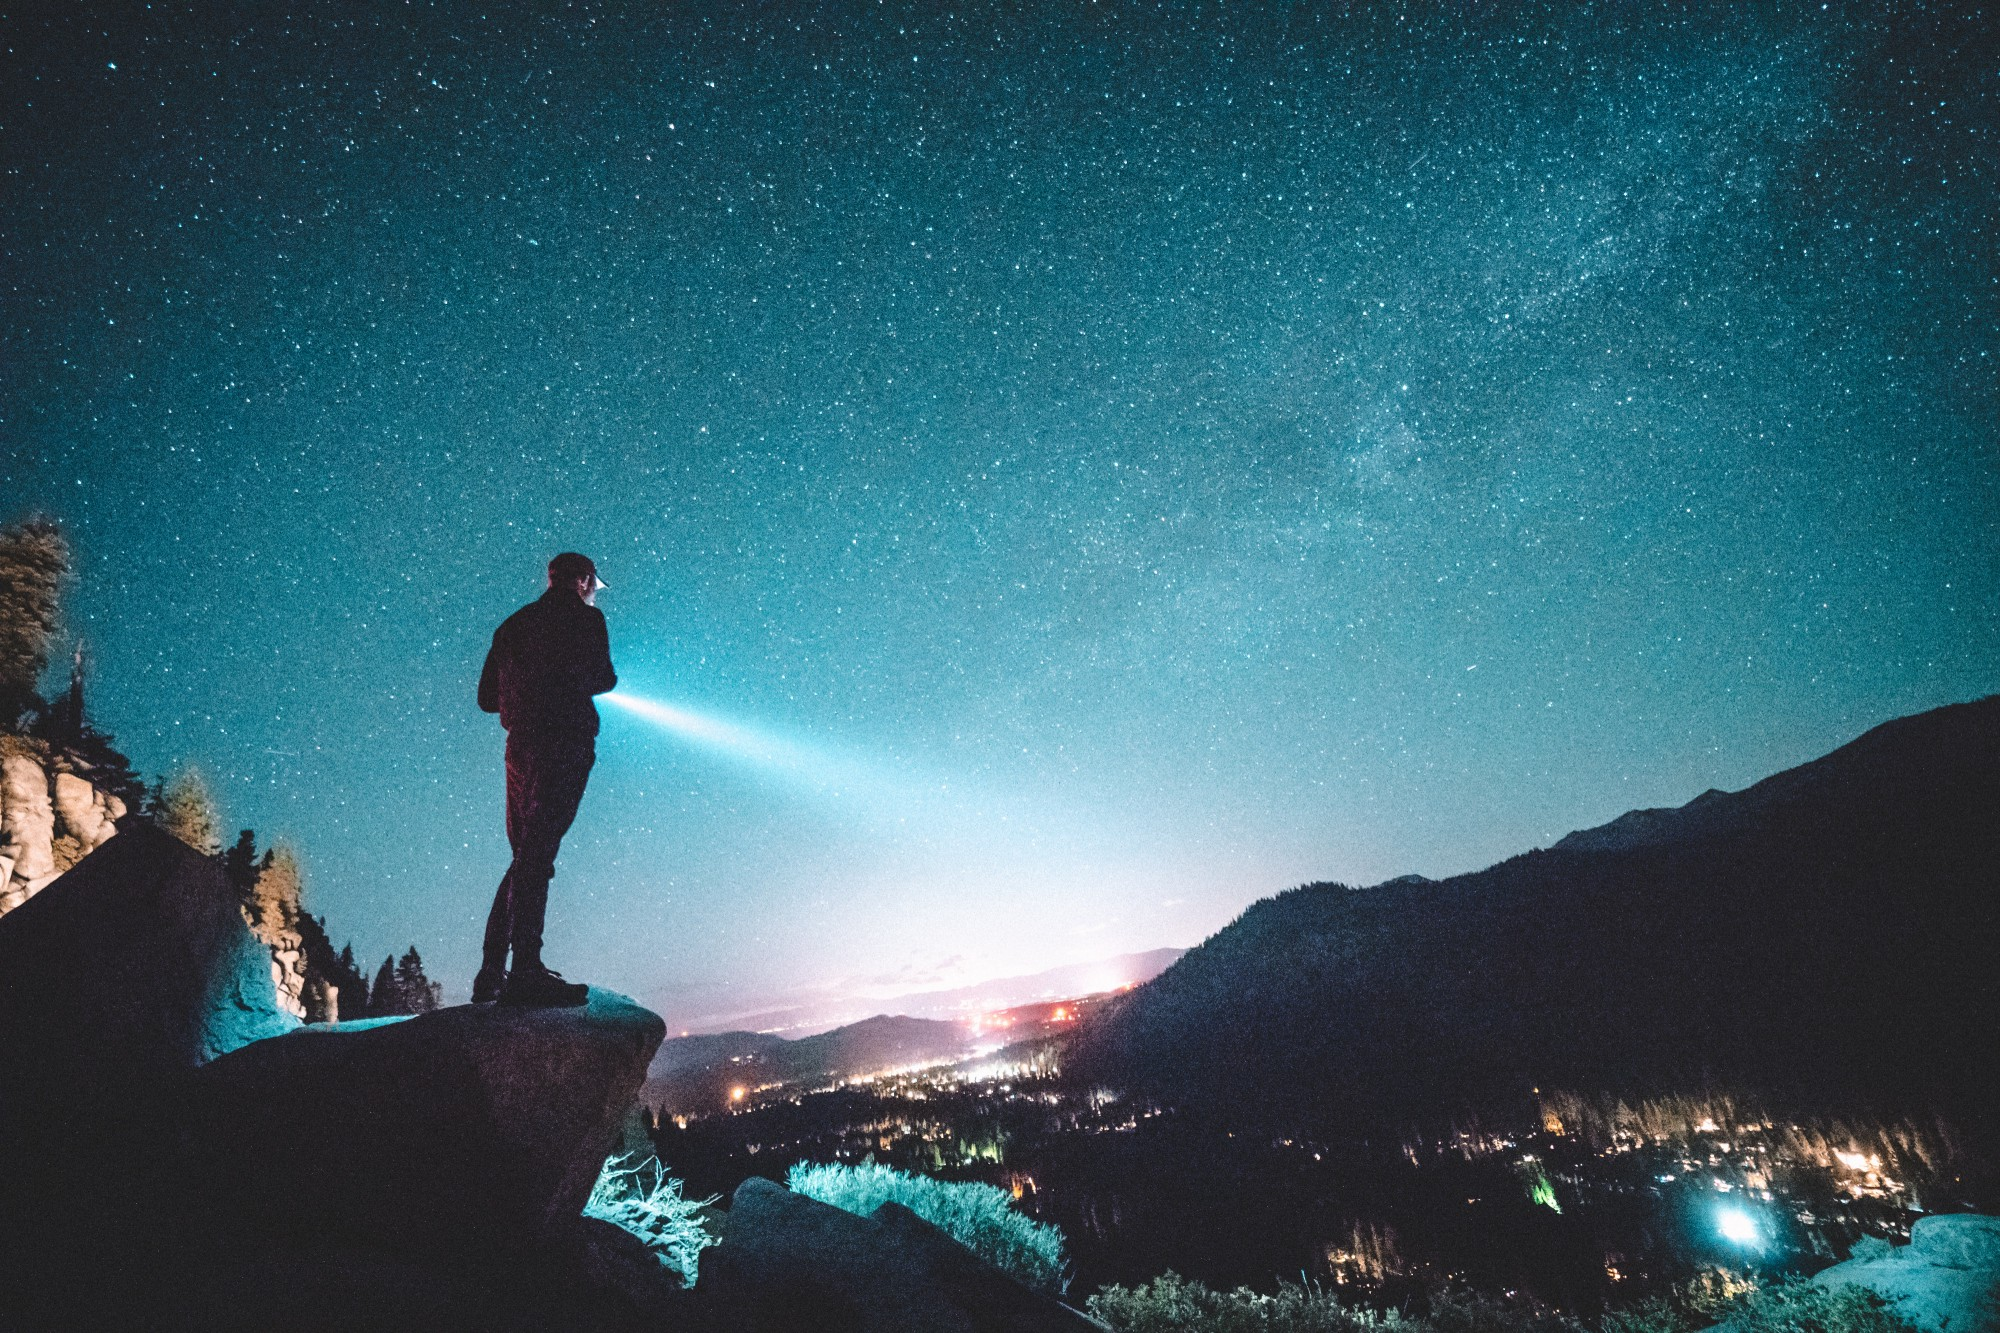 Man standing on mountain, looking out with a flashlight on a valley, under a starry sky.